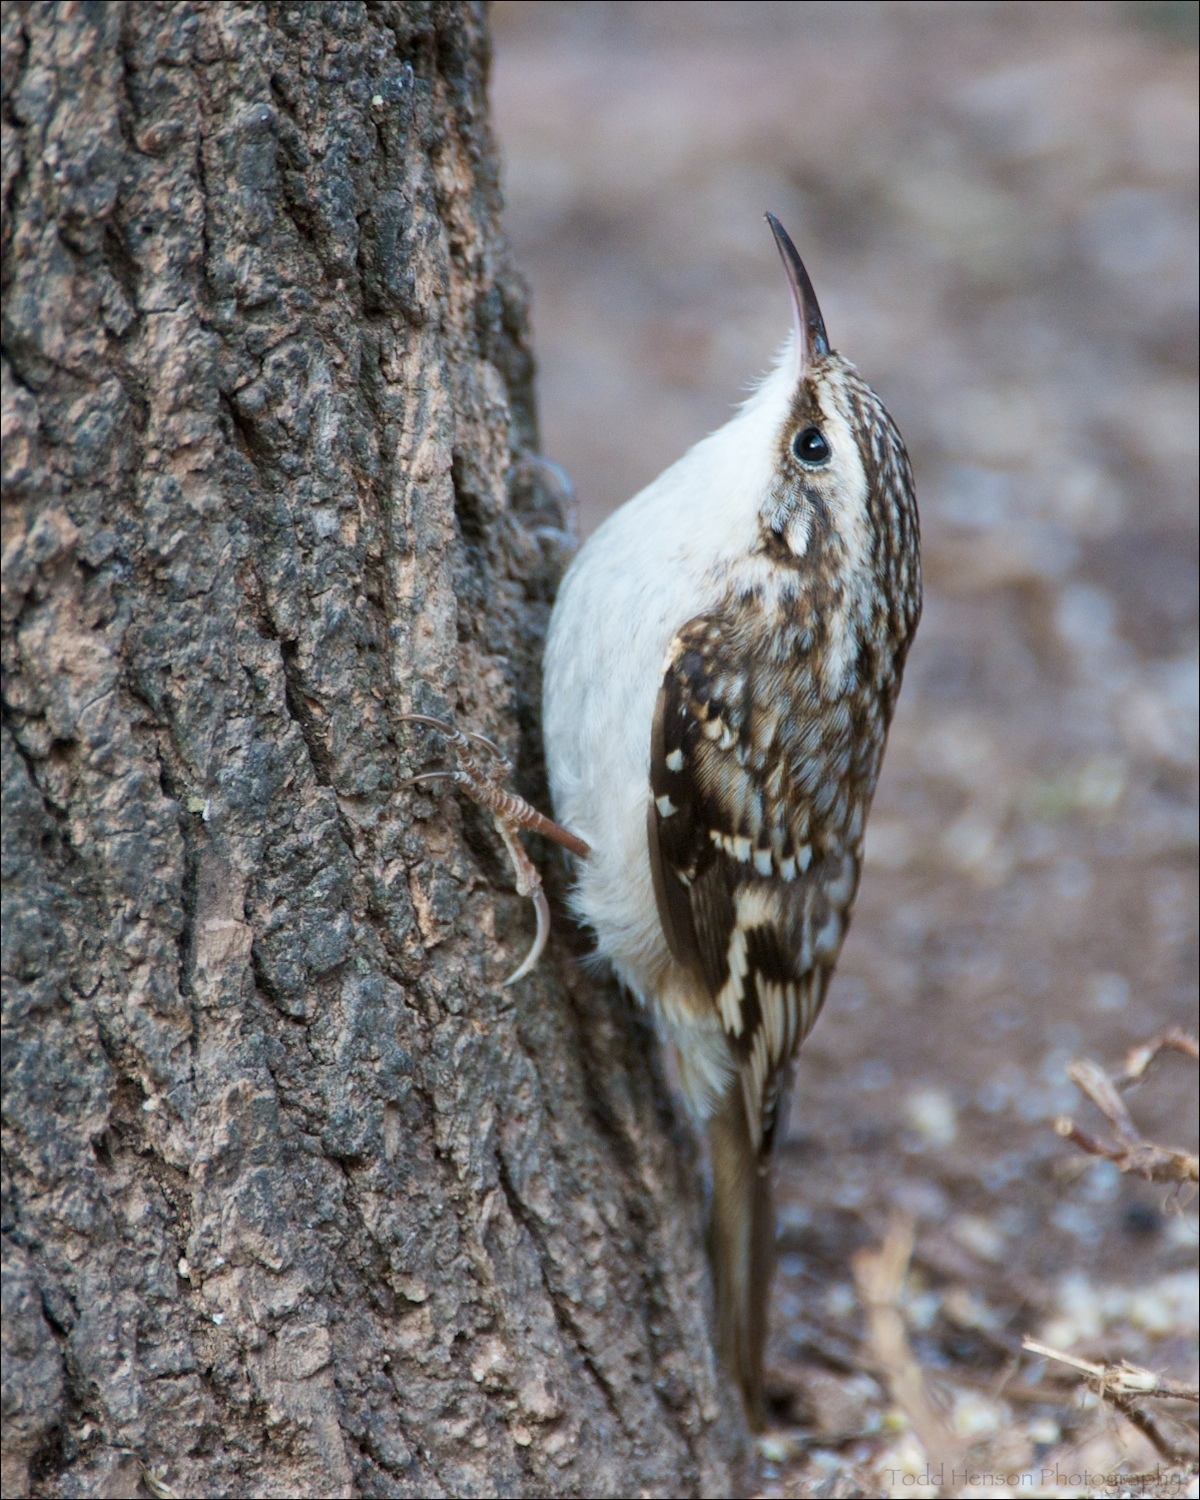 Brown Creeper seen from the side. The white underside makes it easier to see. Notice the curved bill.